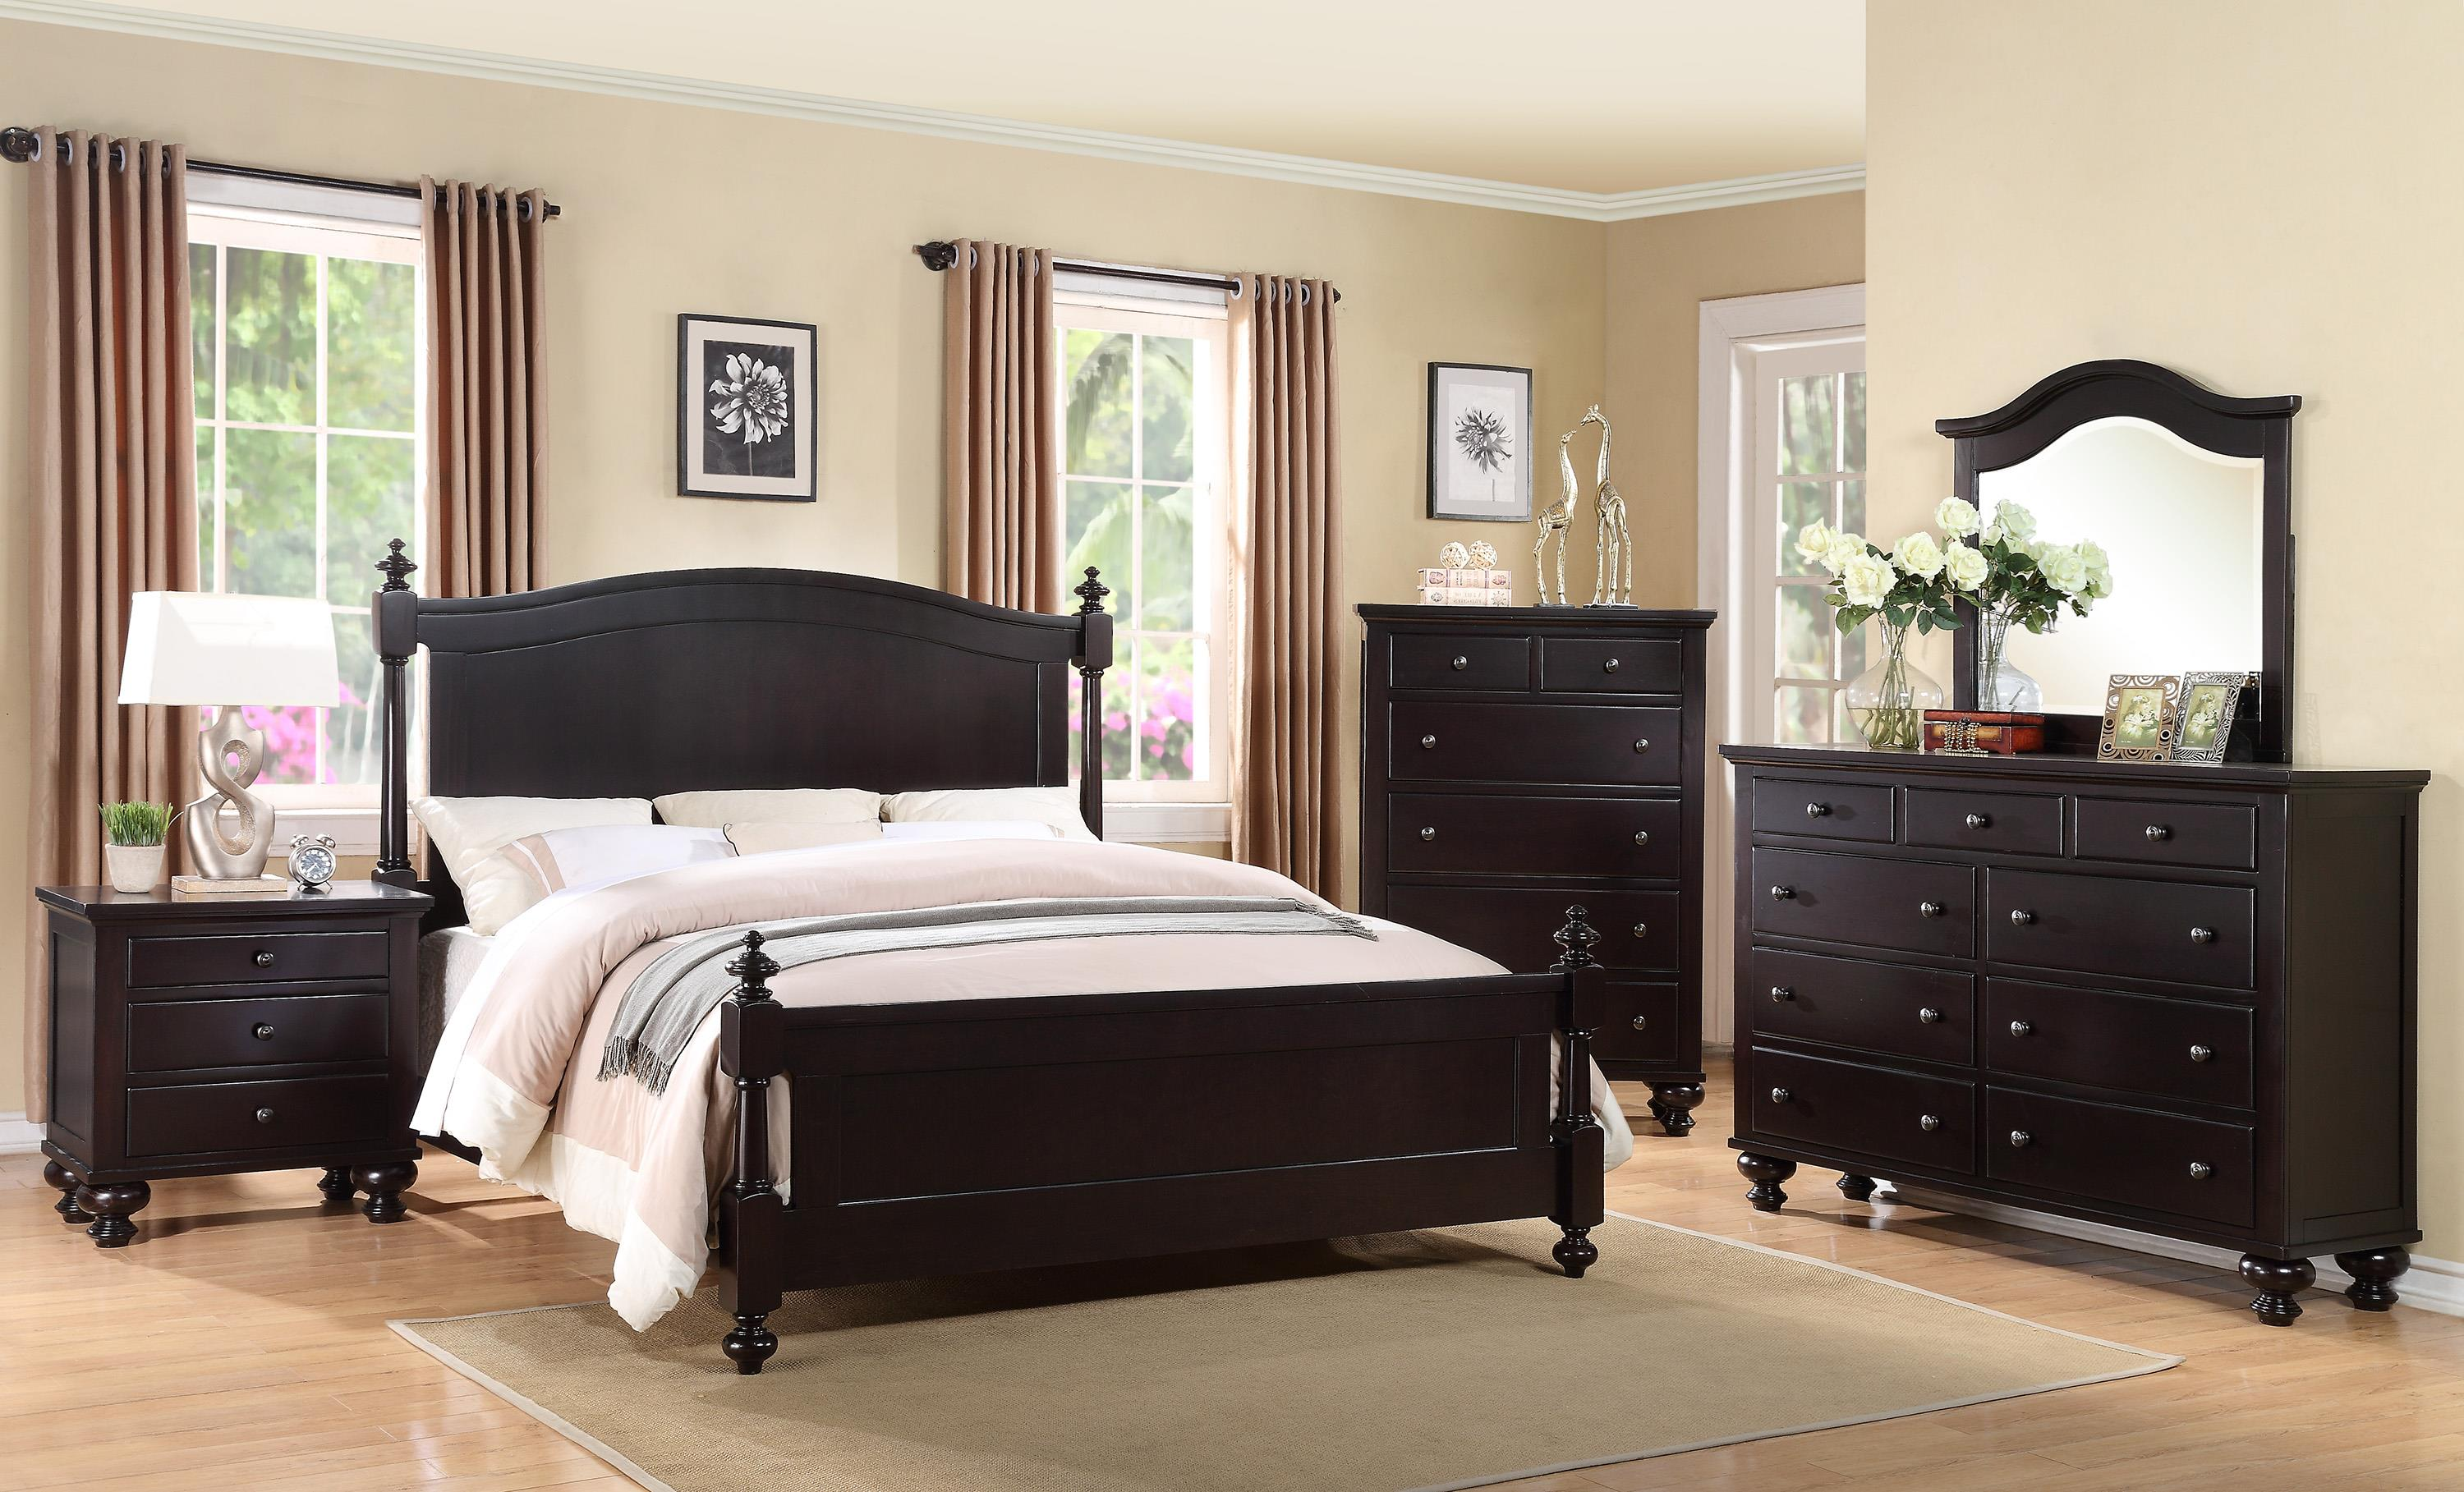 Crown Mark Sommer Queen Bedroom Group - Item Number: B1350 Queen Bedroom Group 1